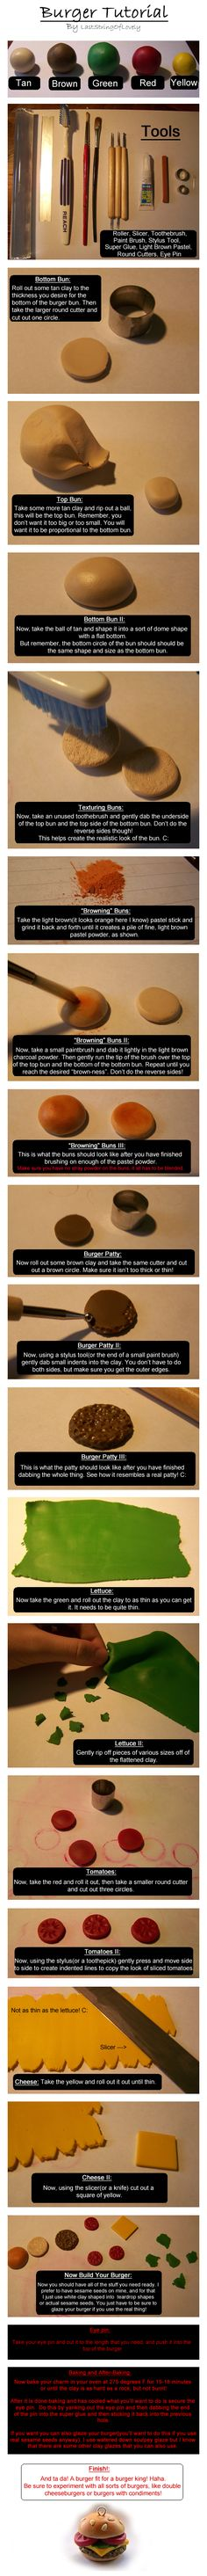 Tutorial on how to make a fimo or polymer clay Burger / Hamburger - this works for fondant too